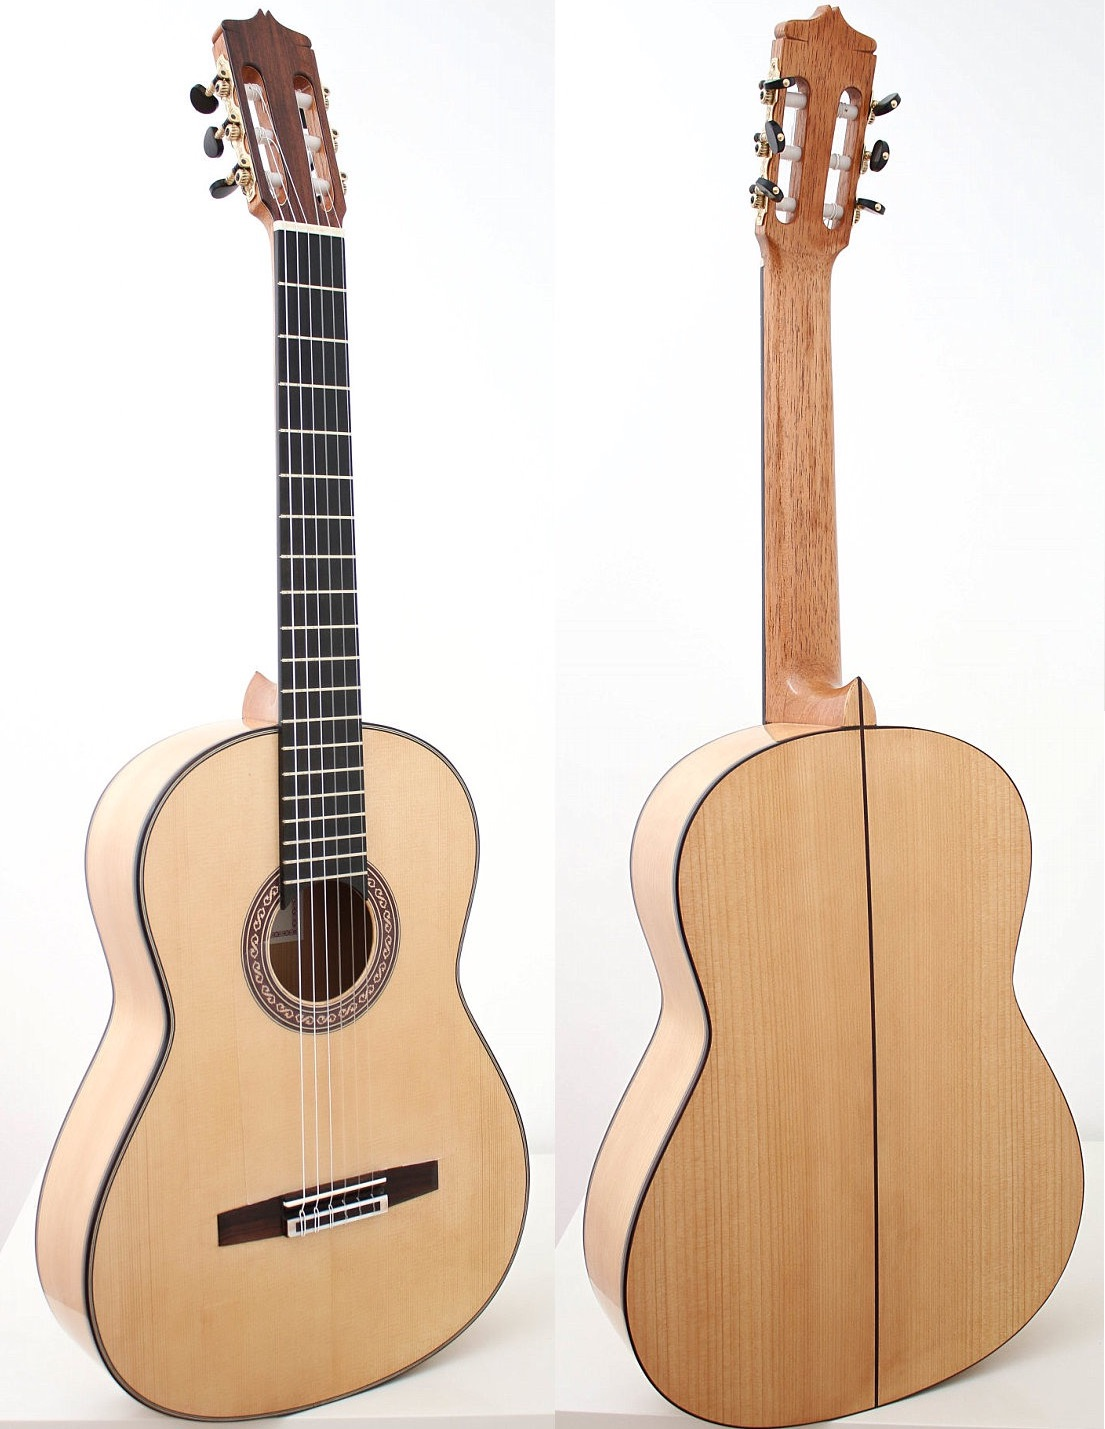 Flamenco concert guitar Eduardo Durán Ferrer for sale